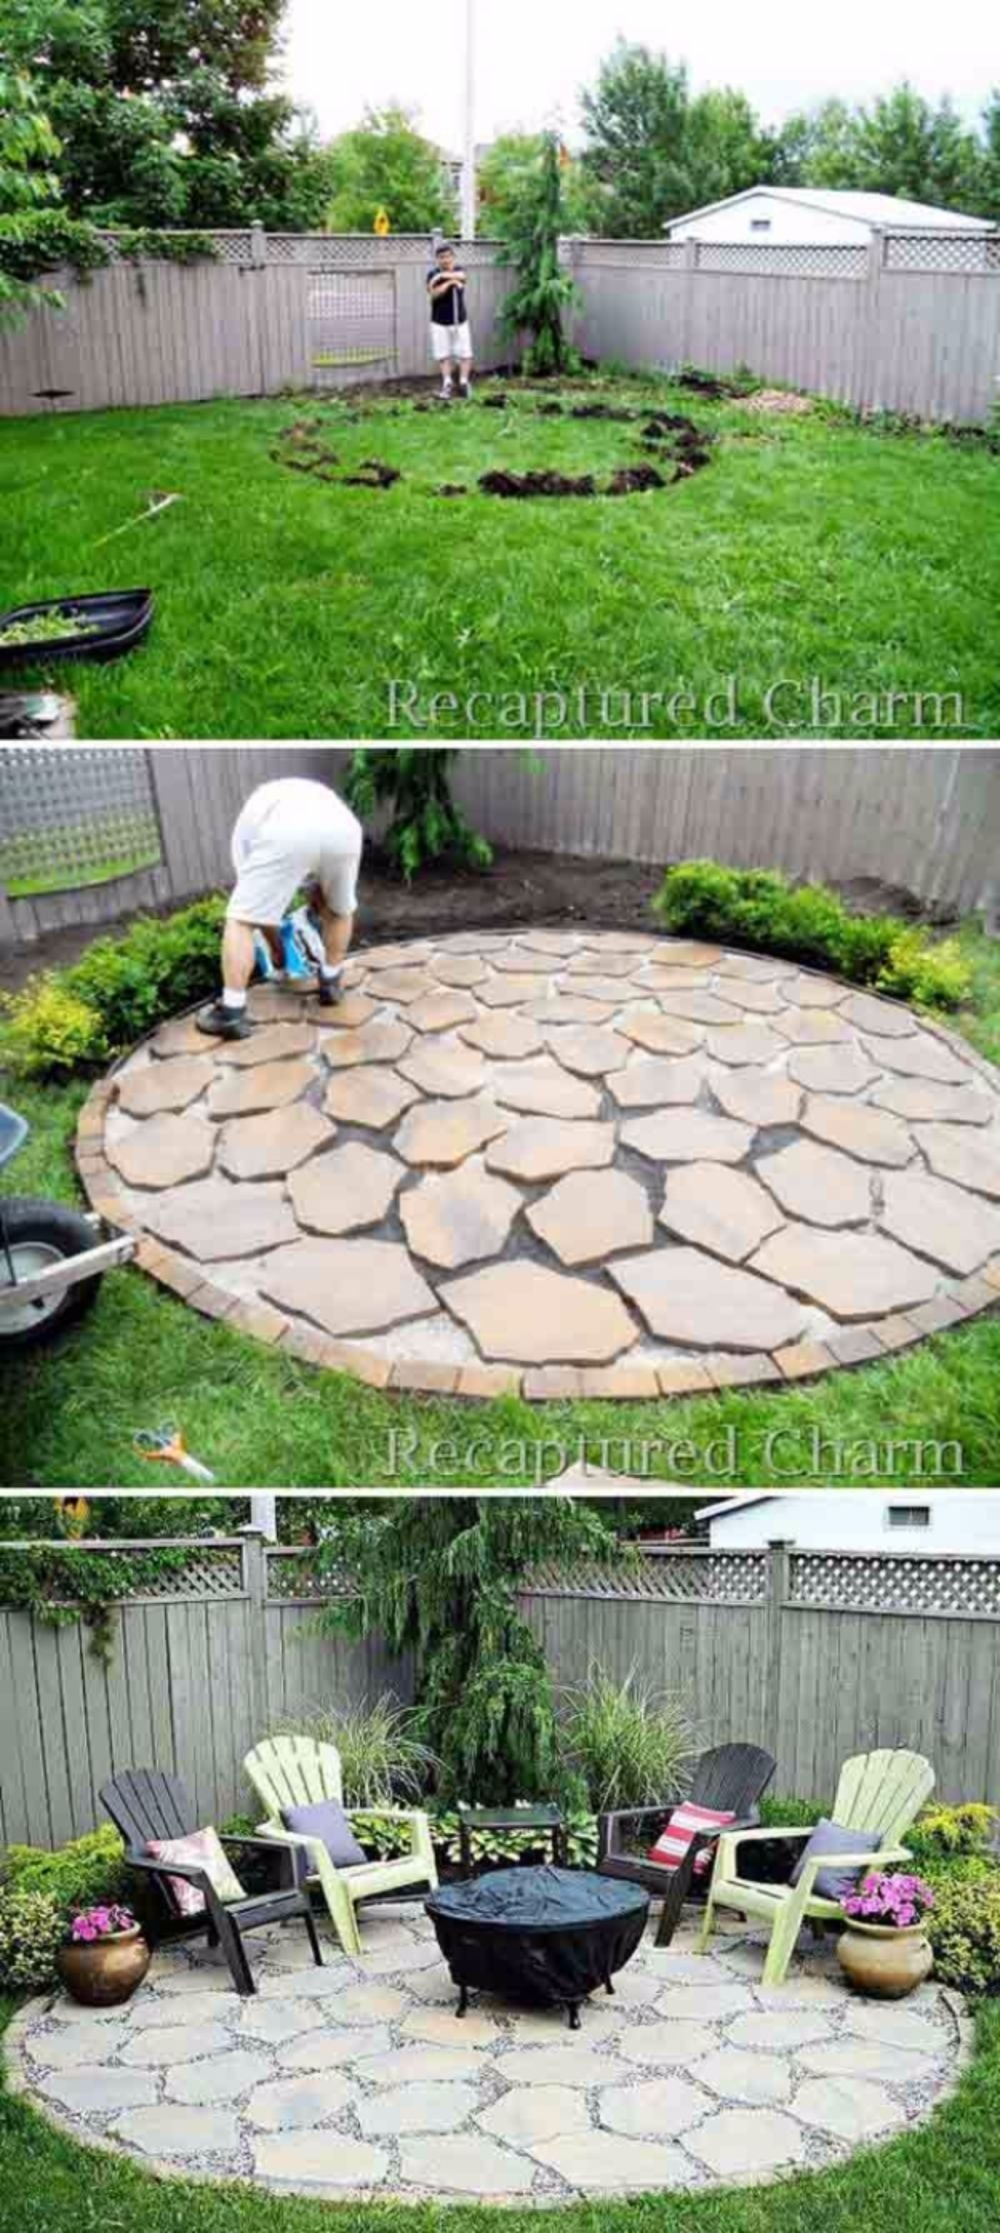 10 Great Do It Yourself Backyard Ideas 30 diy patio ideas on a budget diy patio patios and budgeting 5